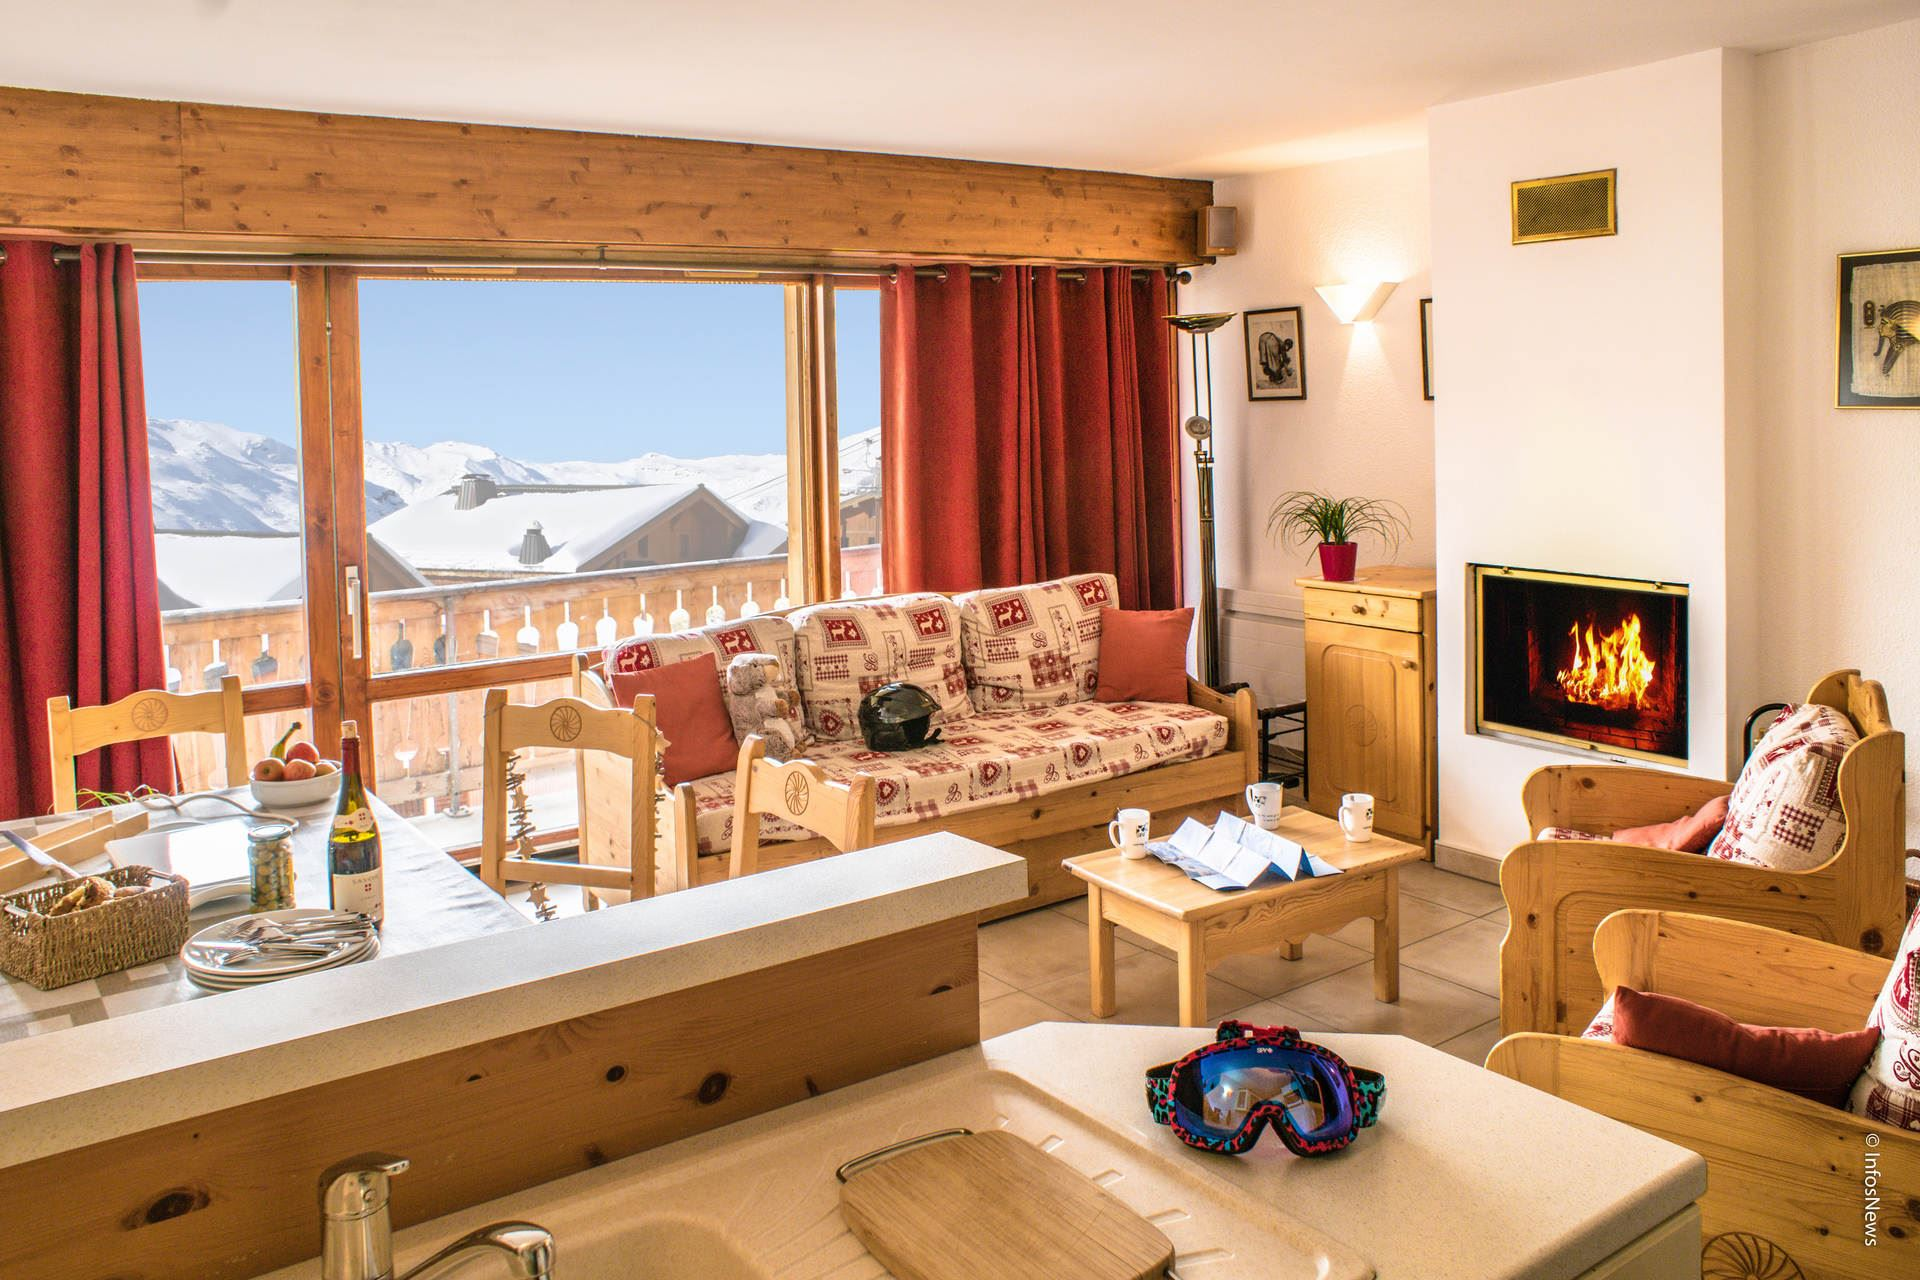 BEAU SOLEIL 8 / 3 ROOMS 6 PEOPLE TYPE A GRAND COMFORT - 4 SNOW FLAKES SILVER - VTI